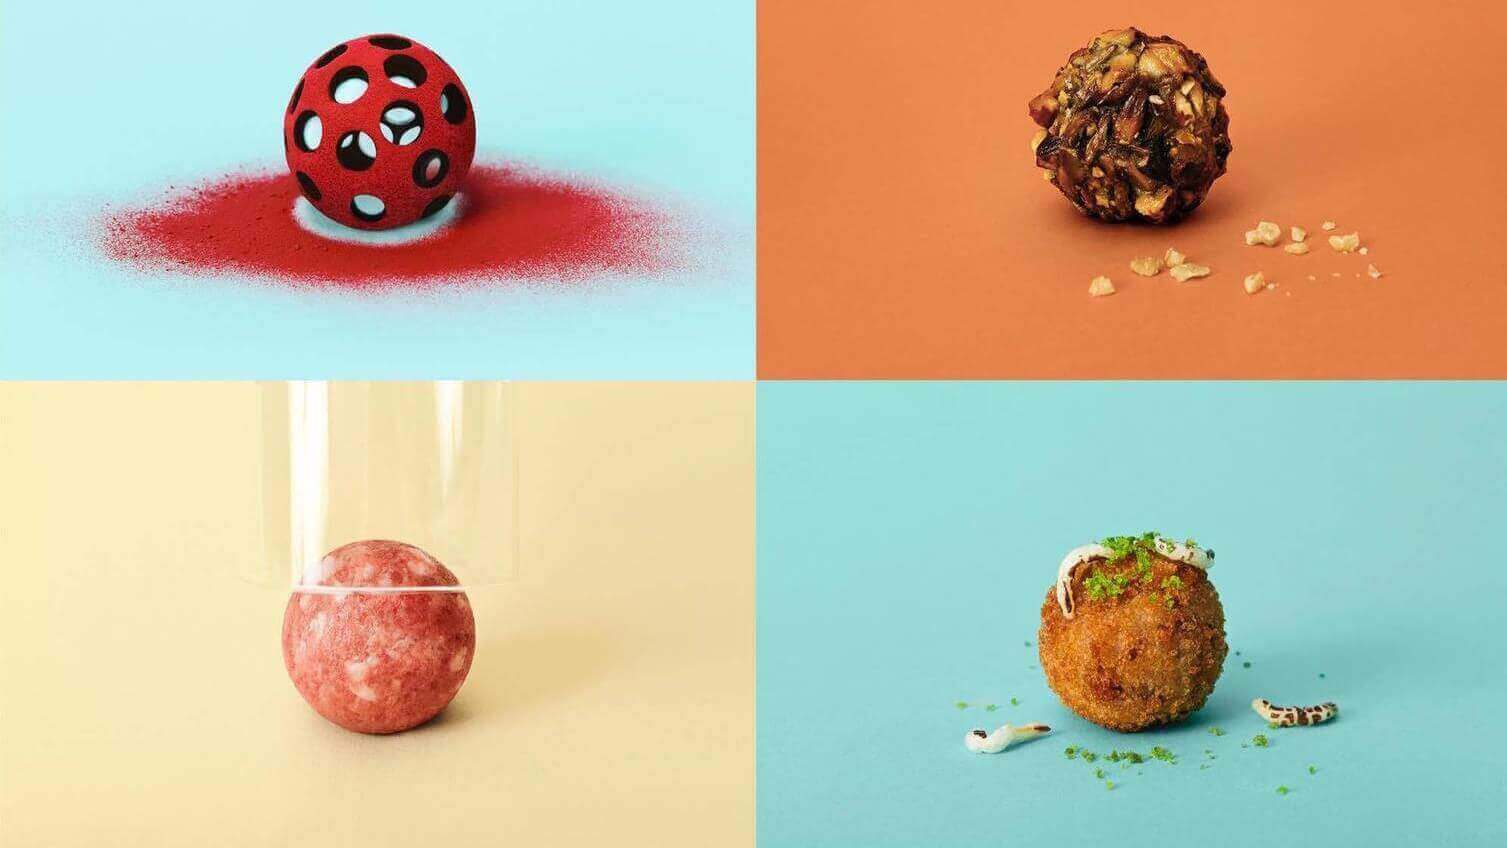 IKEA Will Save the Planet with 3D Printed Meatballs | All3DP